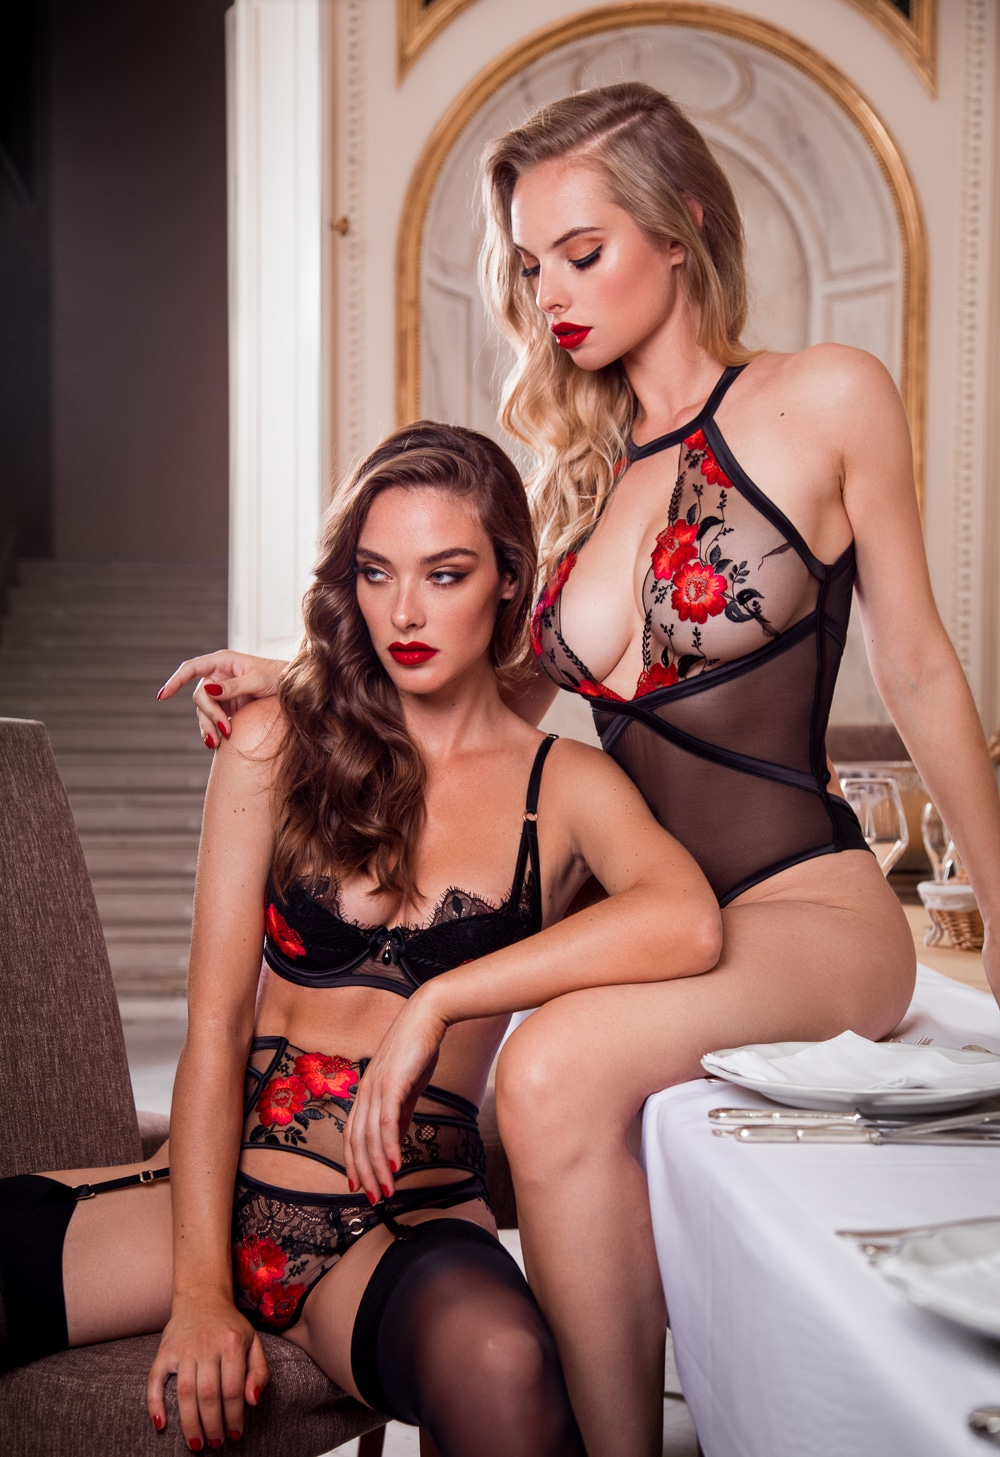 Honey-Birdette-Indecent-Manor-Campaign-1-3.jpg